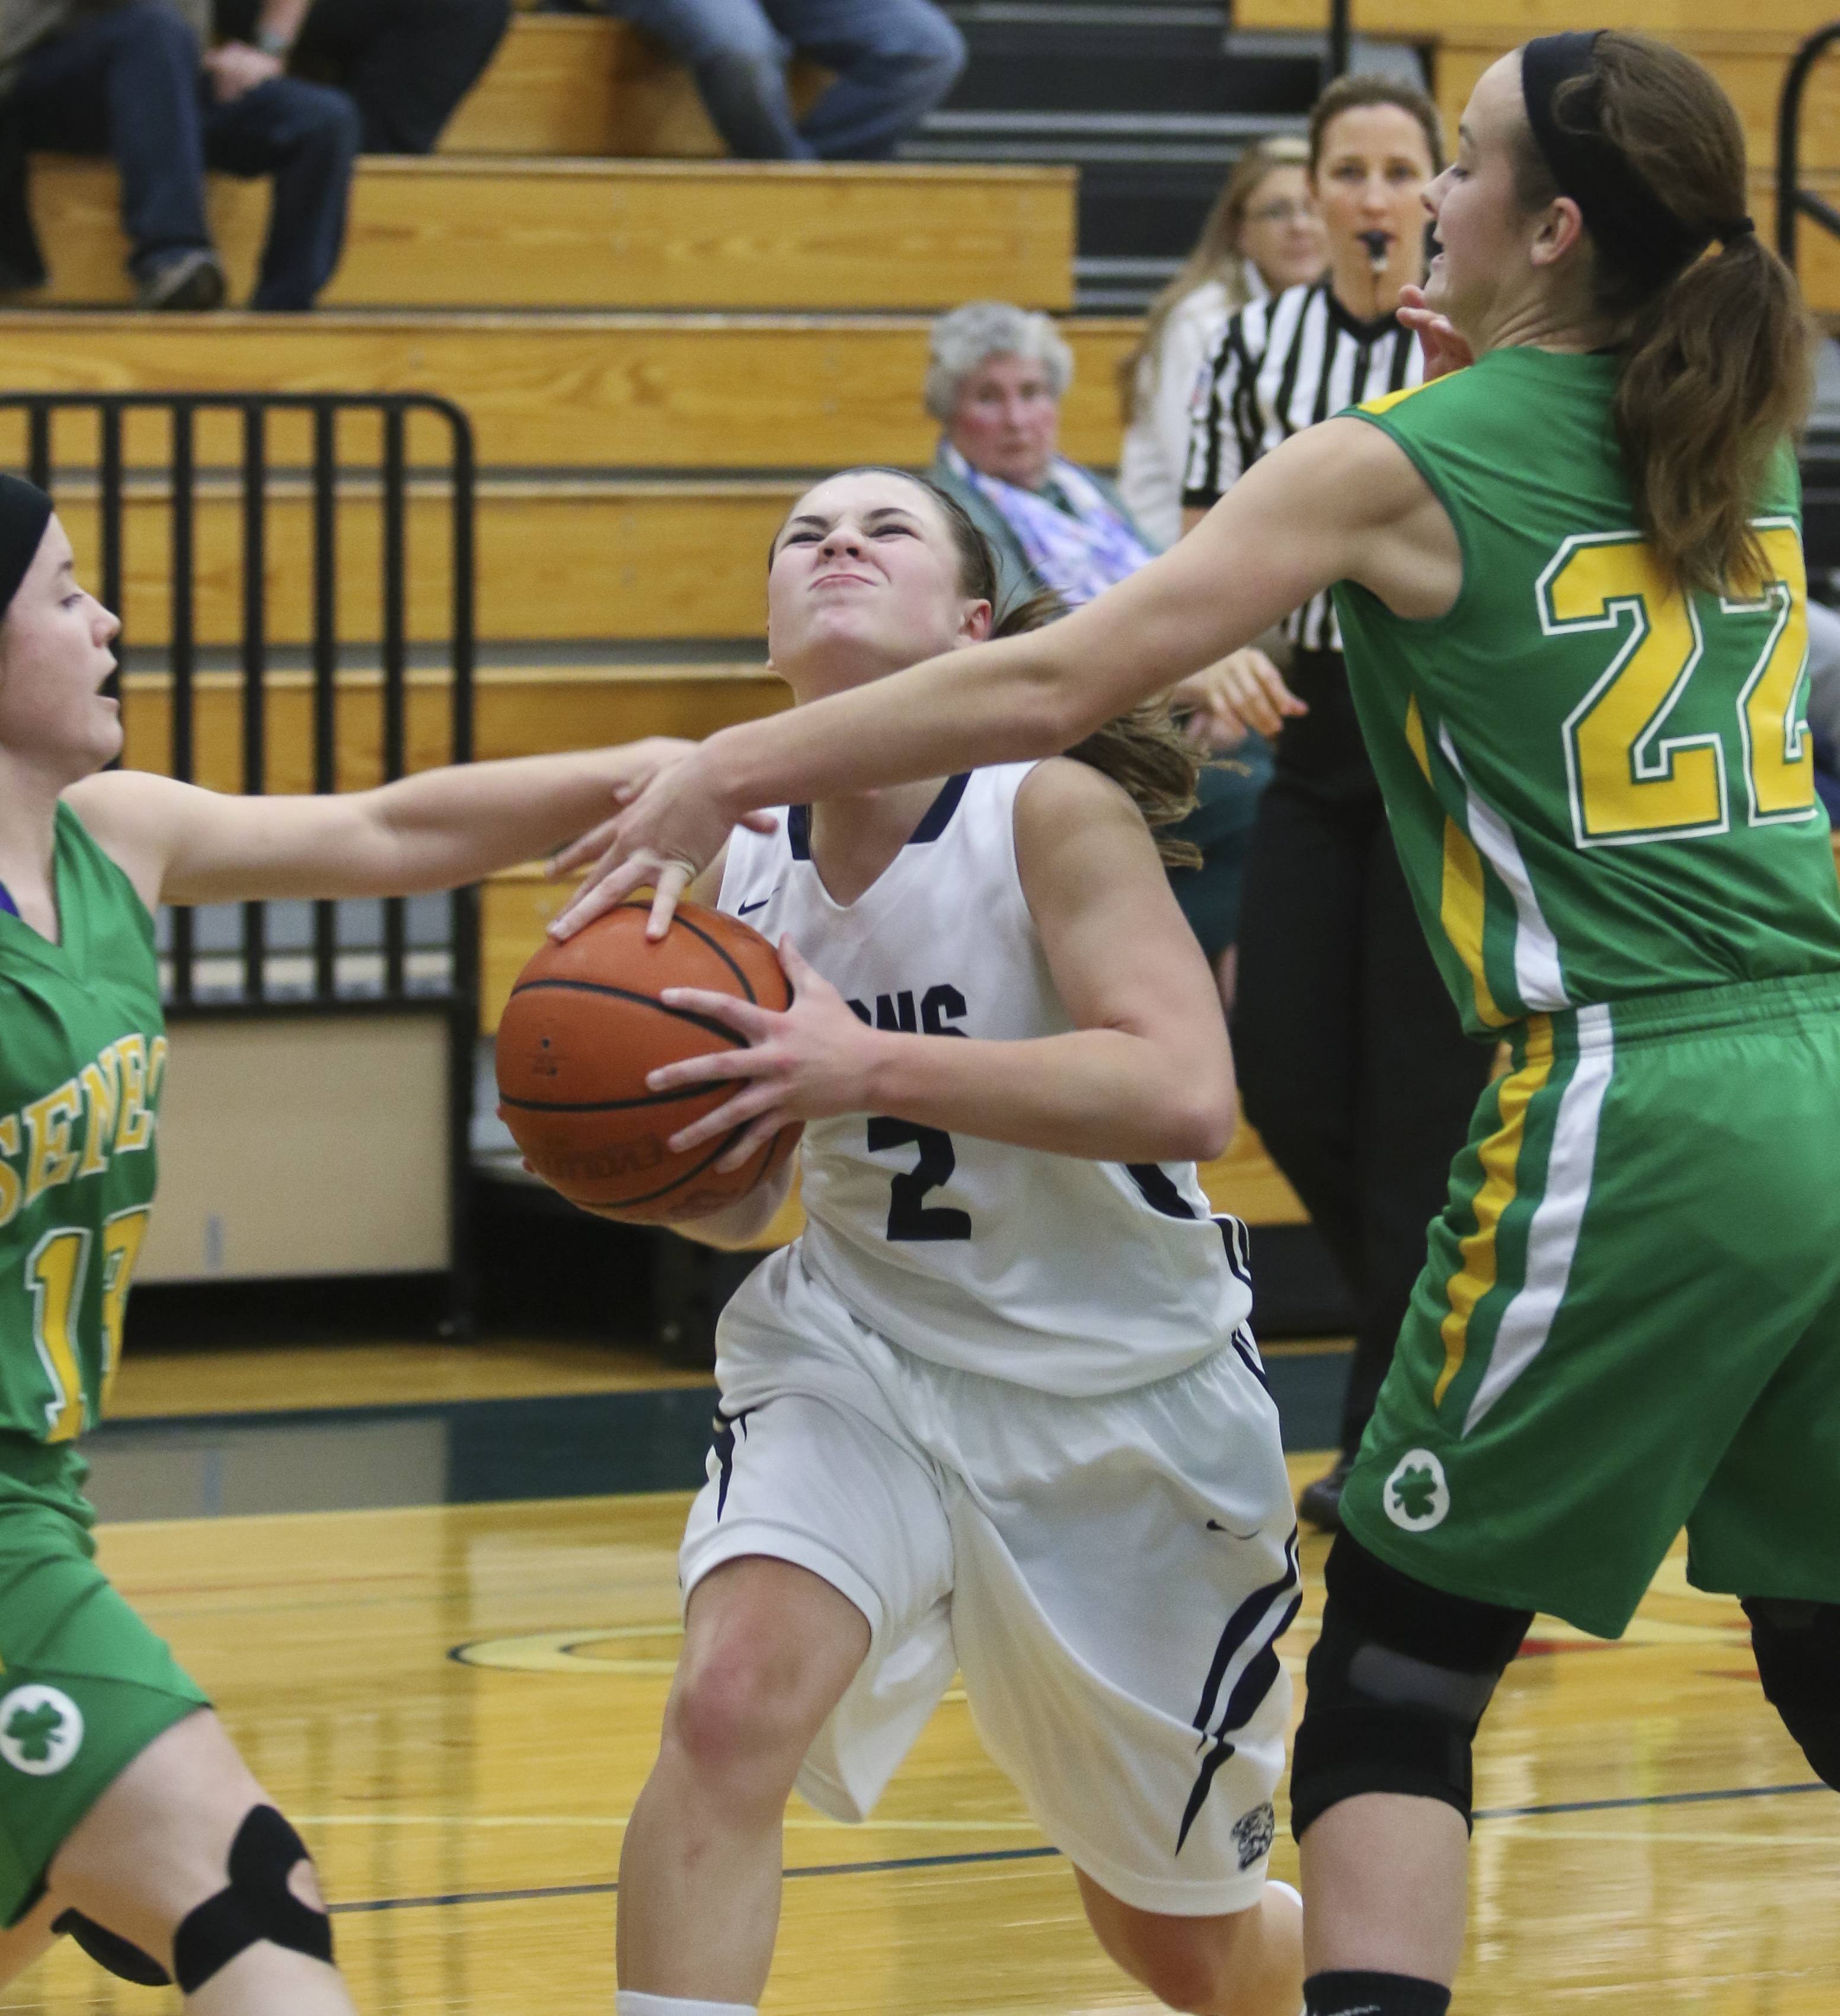 Lisle's Natalie Takahashi is fouled as she makes her way to the basket in action against Seneca during girls basketball on Monday in Lisle.